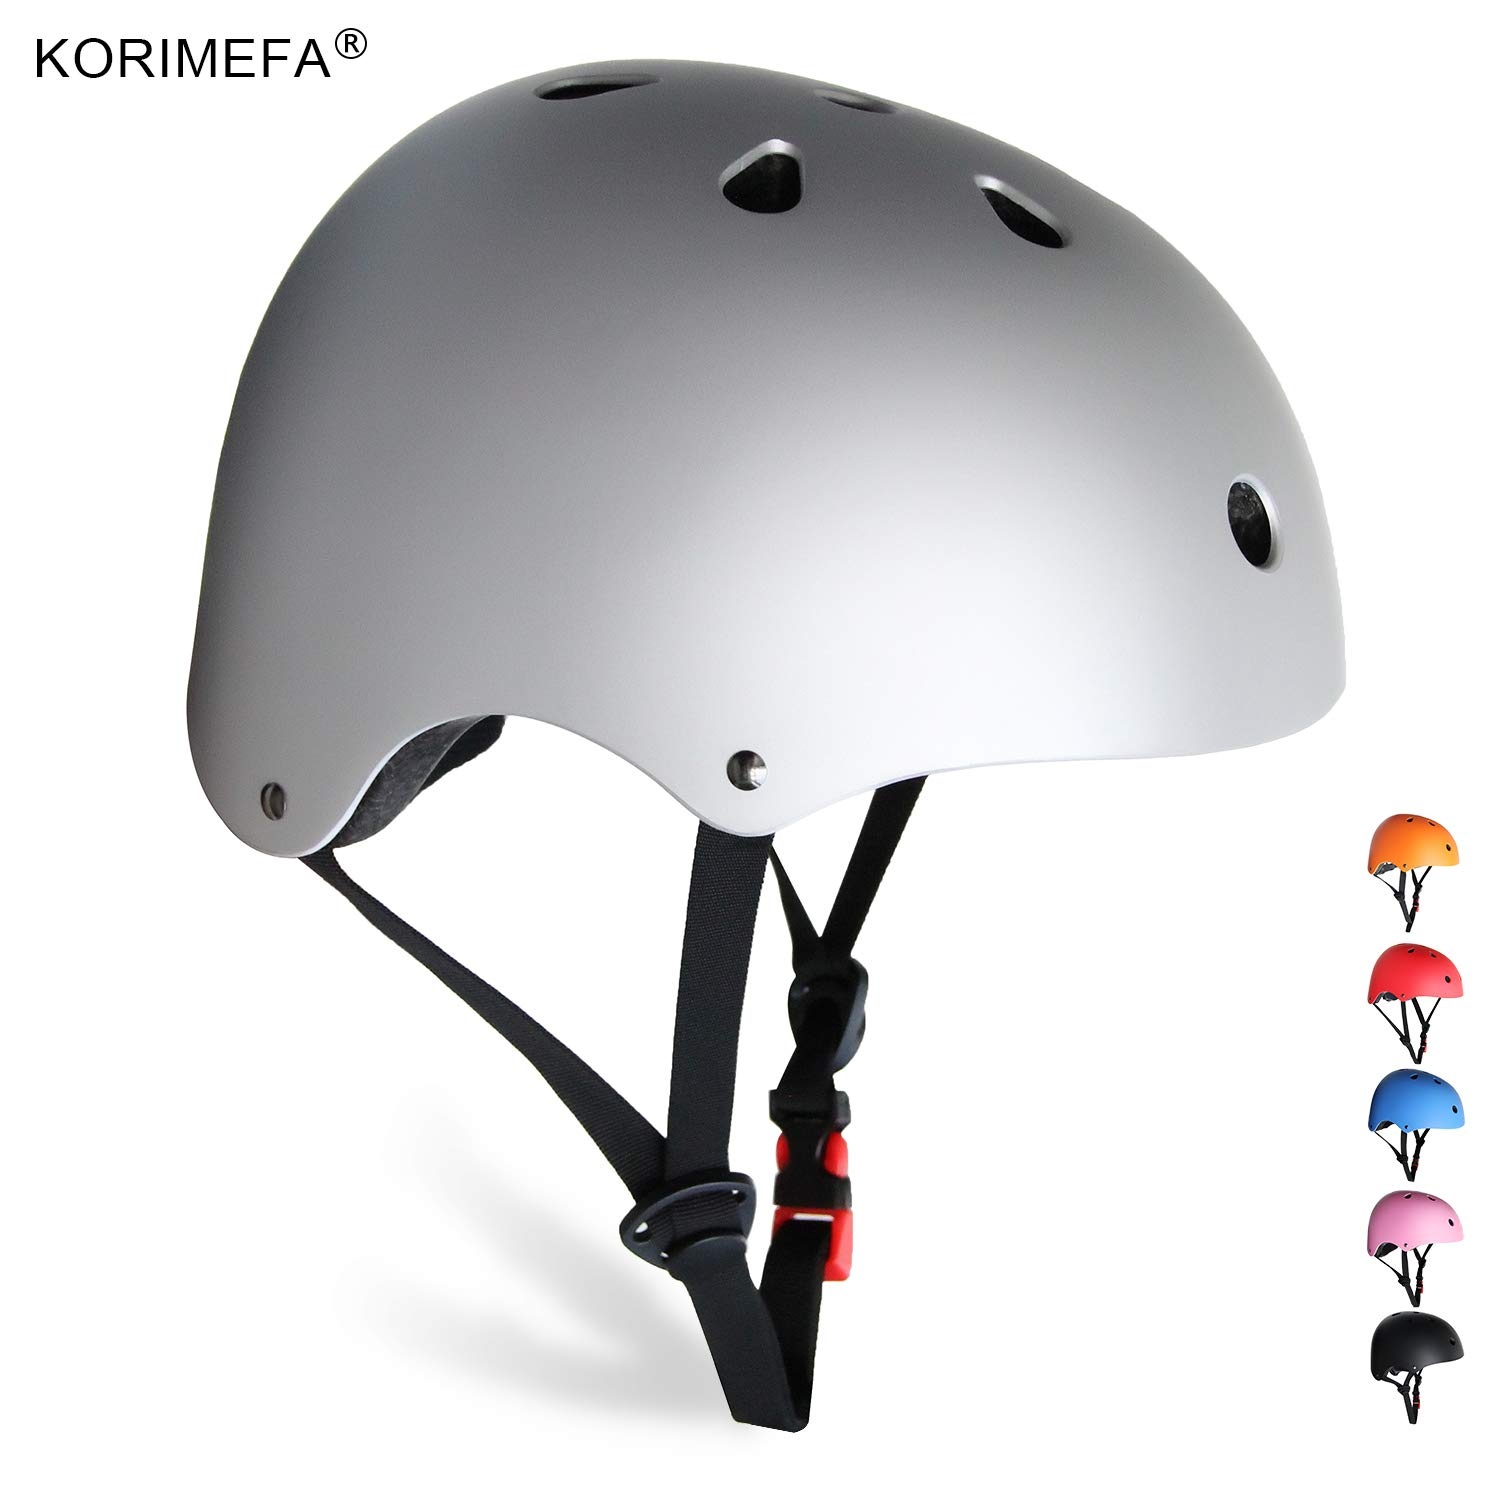 KORIMEFA Skateboard Helmet Kids Youth Adult Bike Helmet Adjustable CPSC Certified Multi-Sports Helmet for Cycling Scooter Roller Skate Inline Skating Rollerblading for Kids Men Women